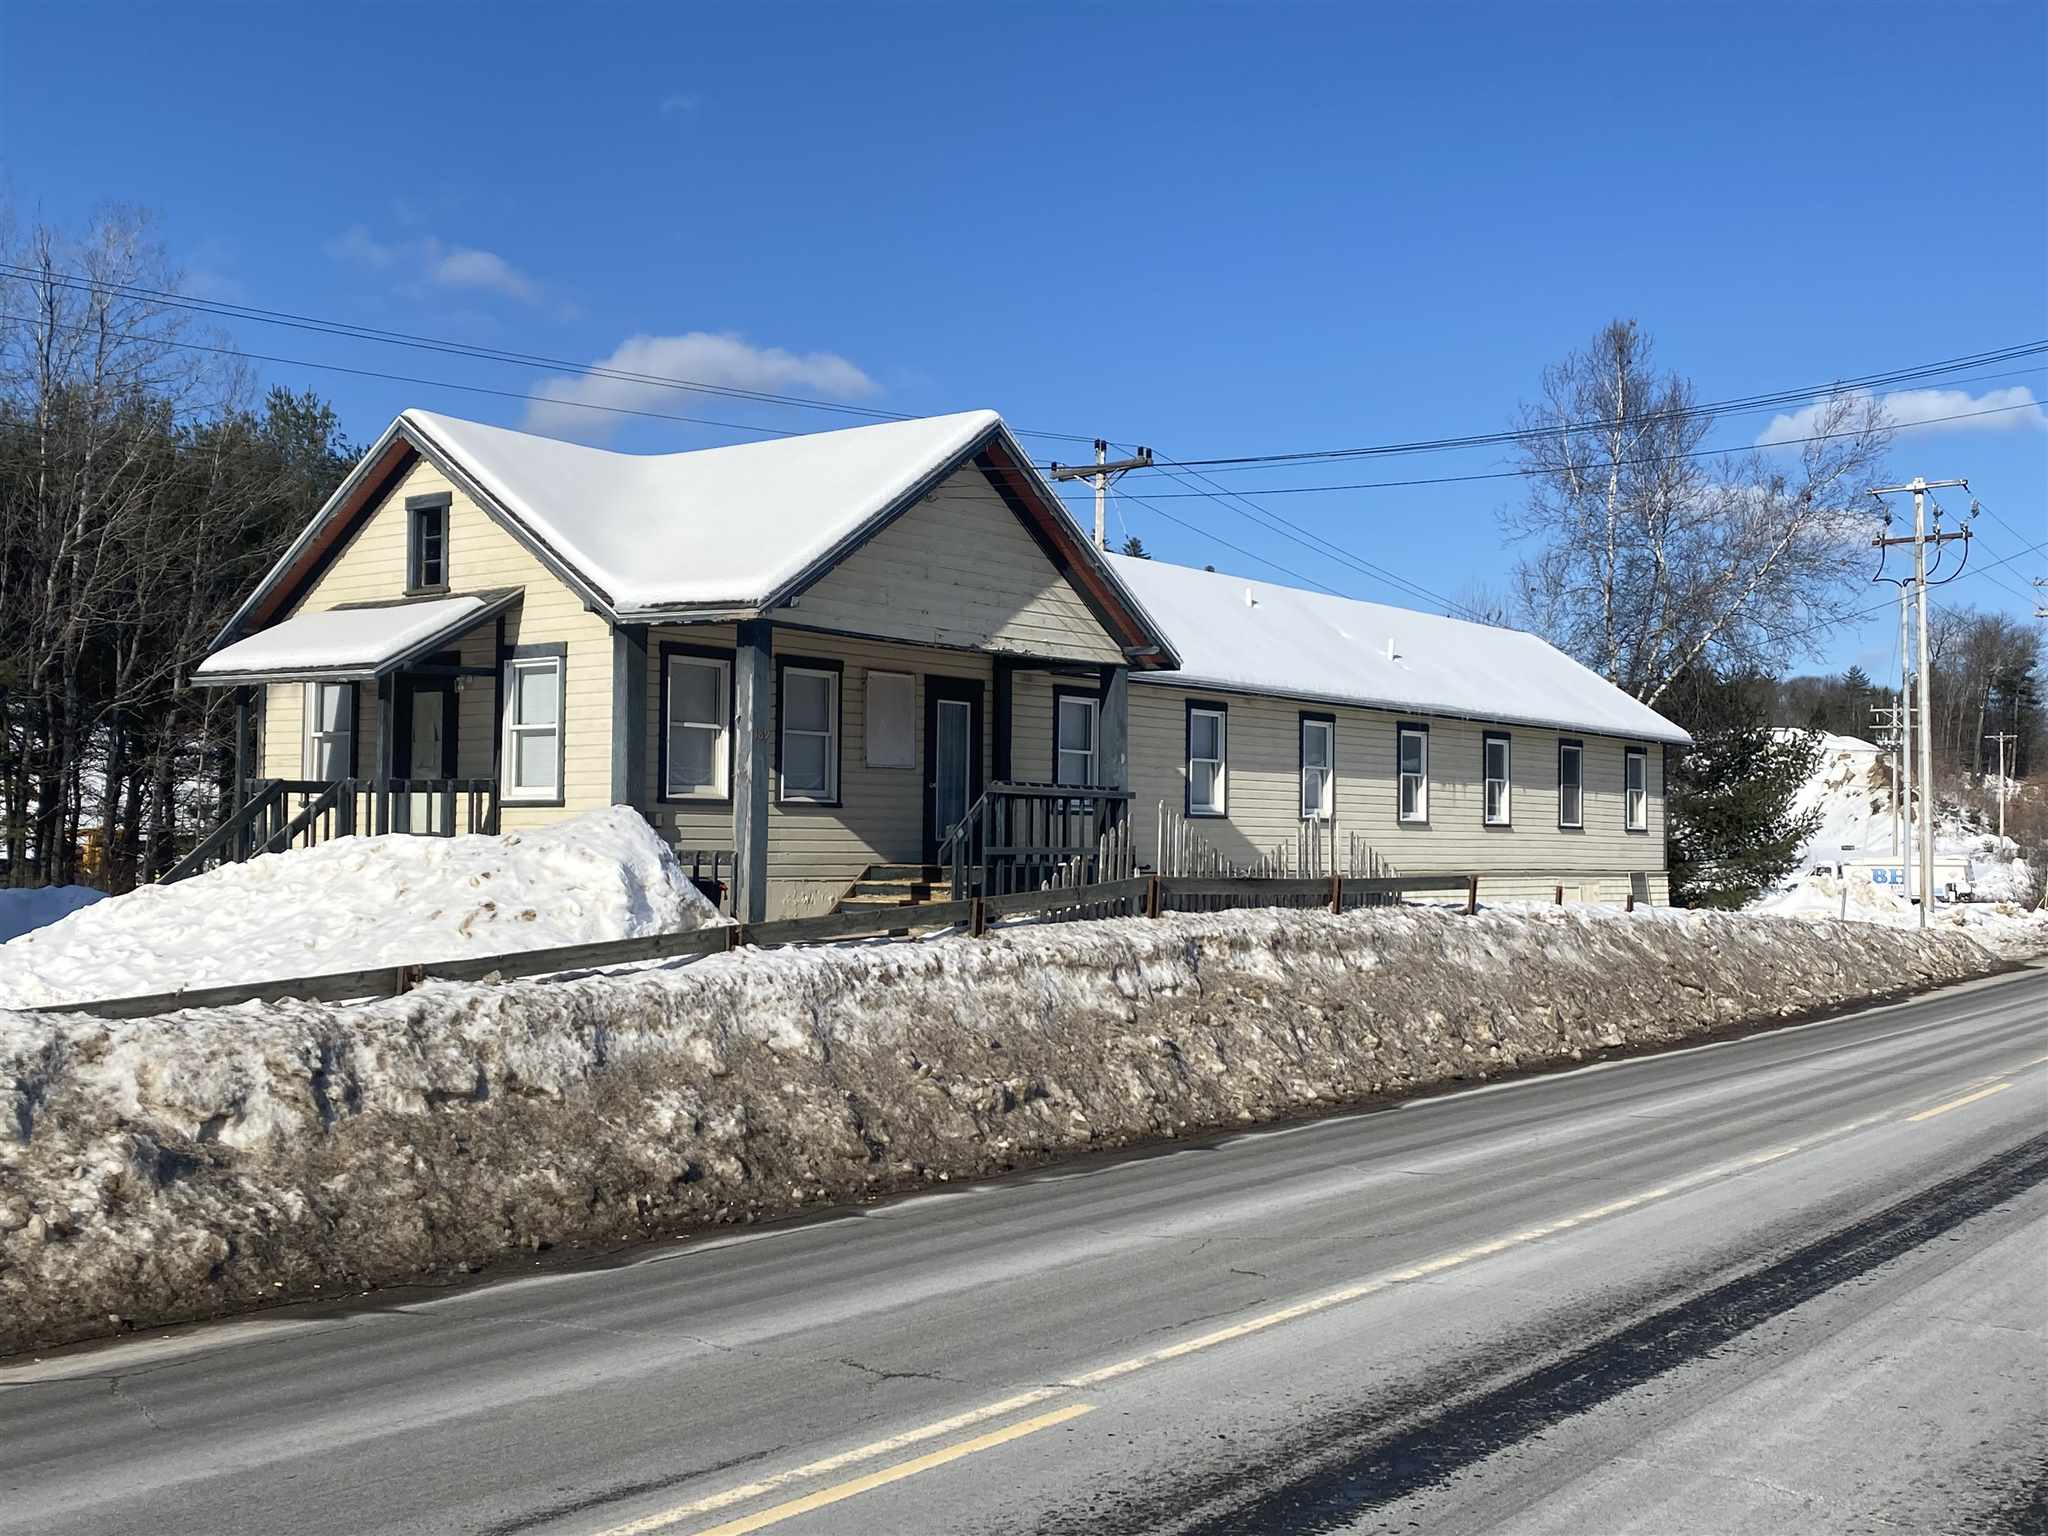 MLS 4796417: 189 US Route 3 Highway, Bridgewater NH